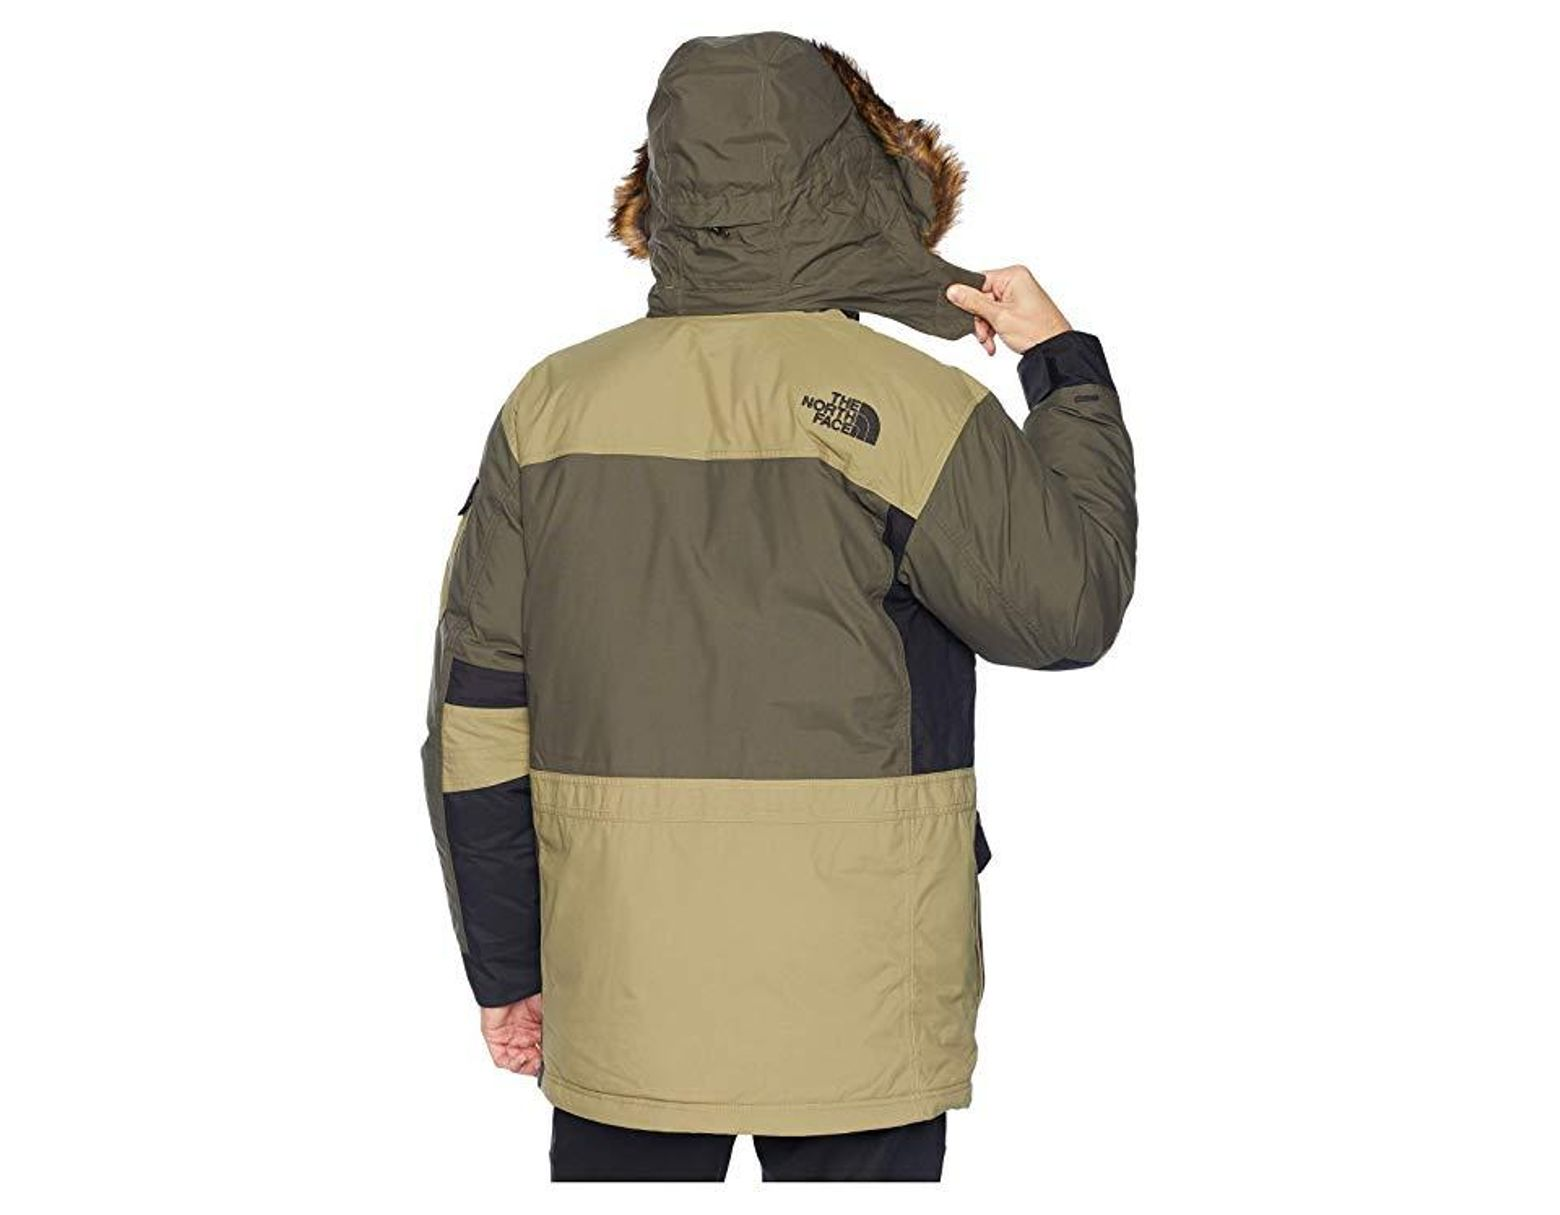 202aa2cee163e The North Face Mcmurdo Parka Iii in Green for Men - Save 50% - Lyst